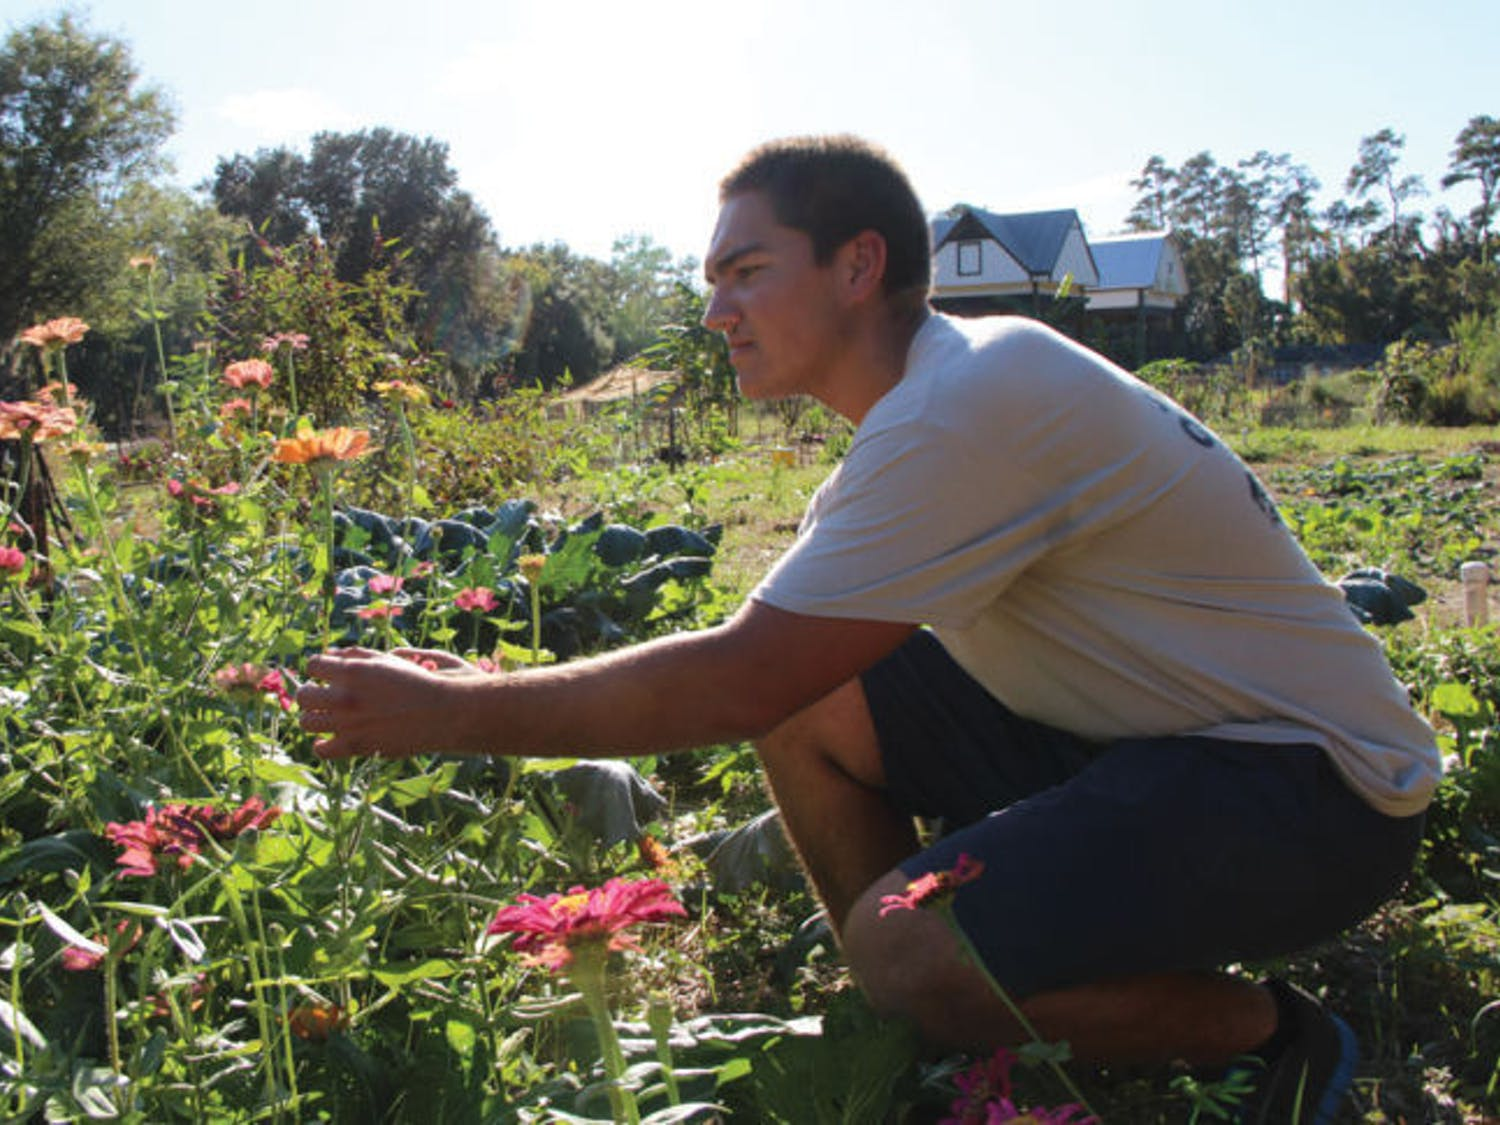 Andrew Krupinski, a 18-year-old freshman in the College of Agricultural and Life Sciences, observes plants in the Student Agriculture Garden across from Lake Alice on Wednesday afternoon.